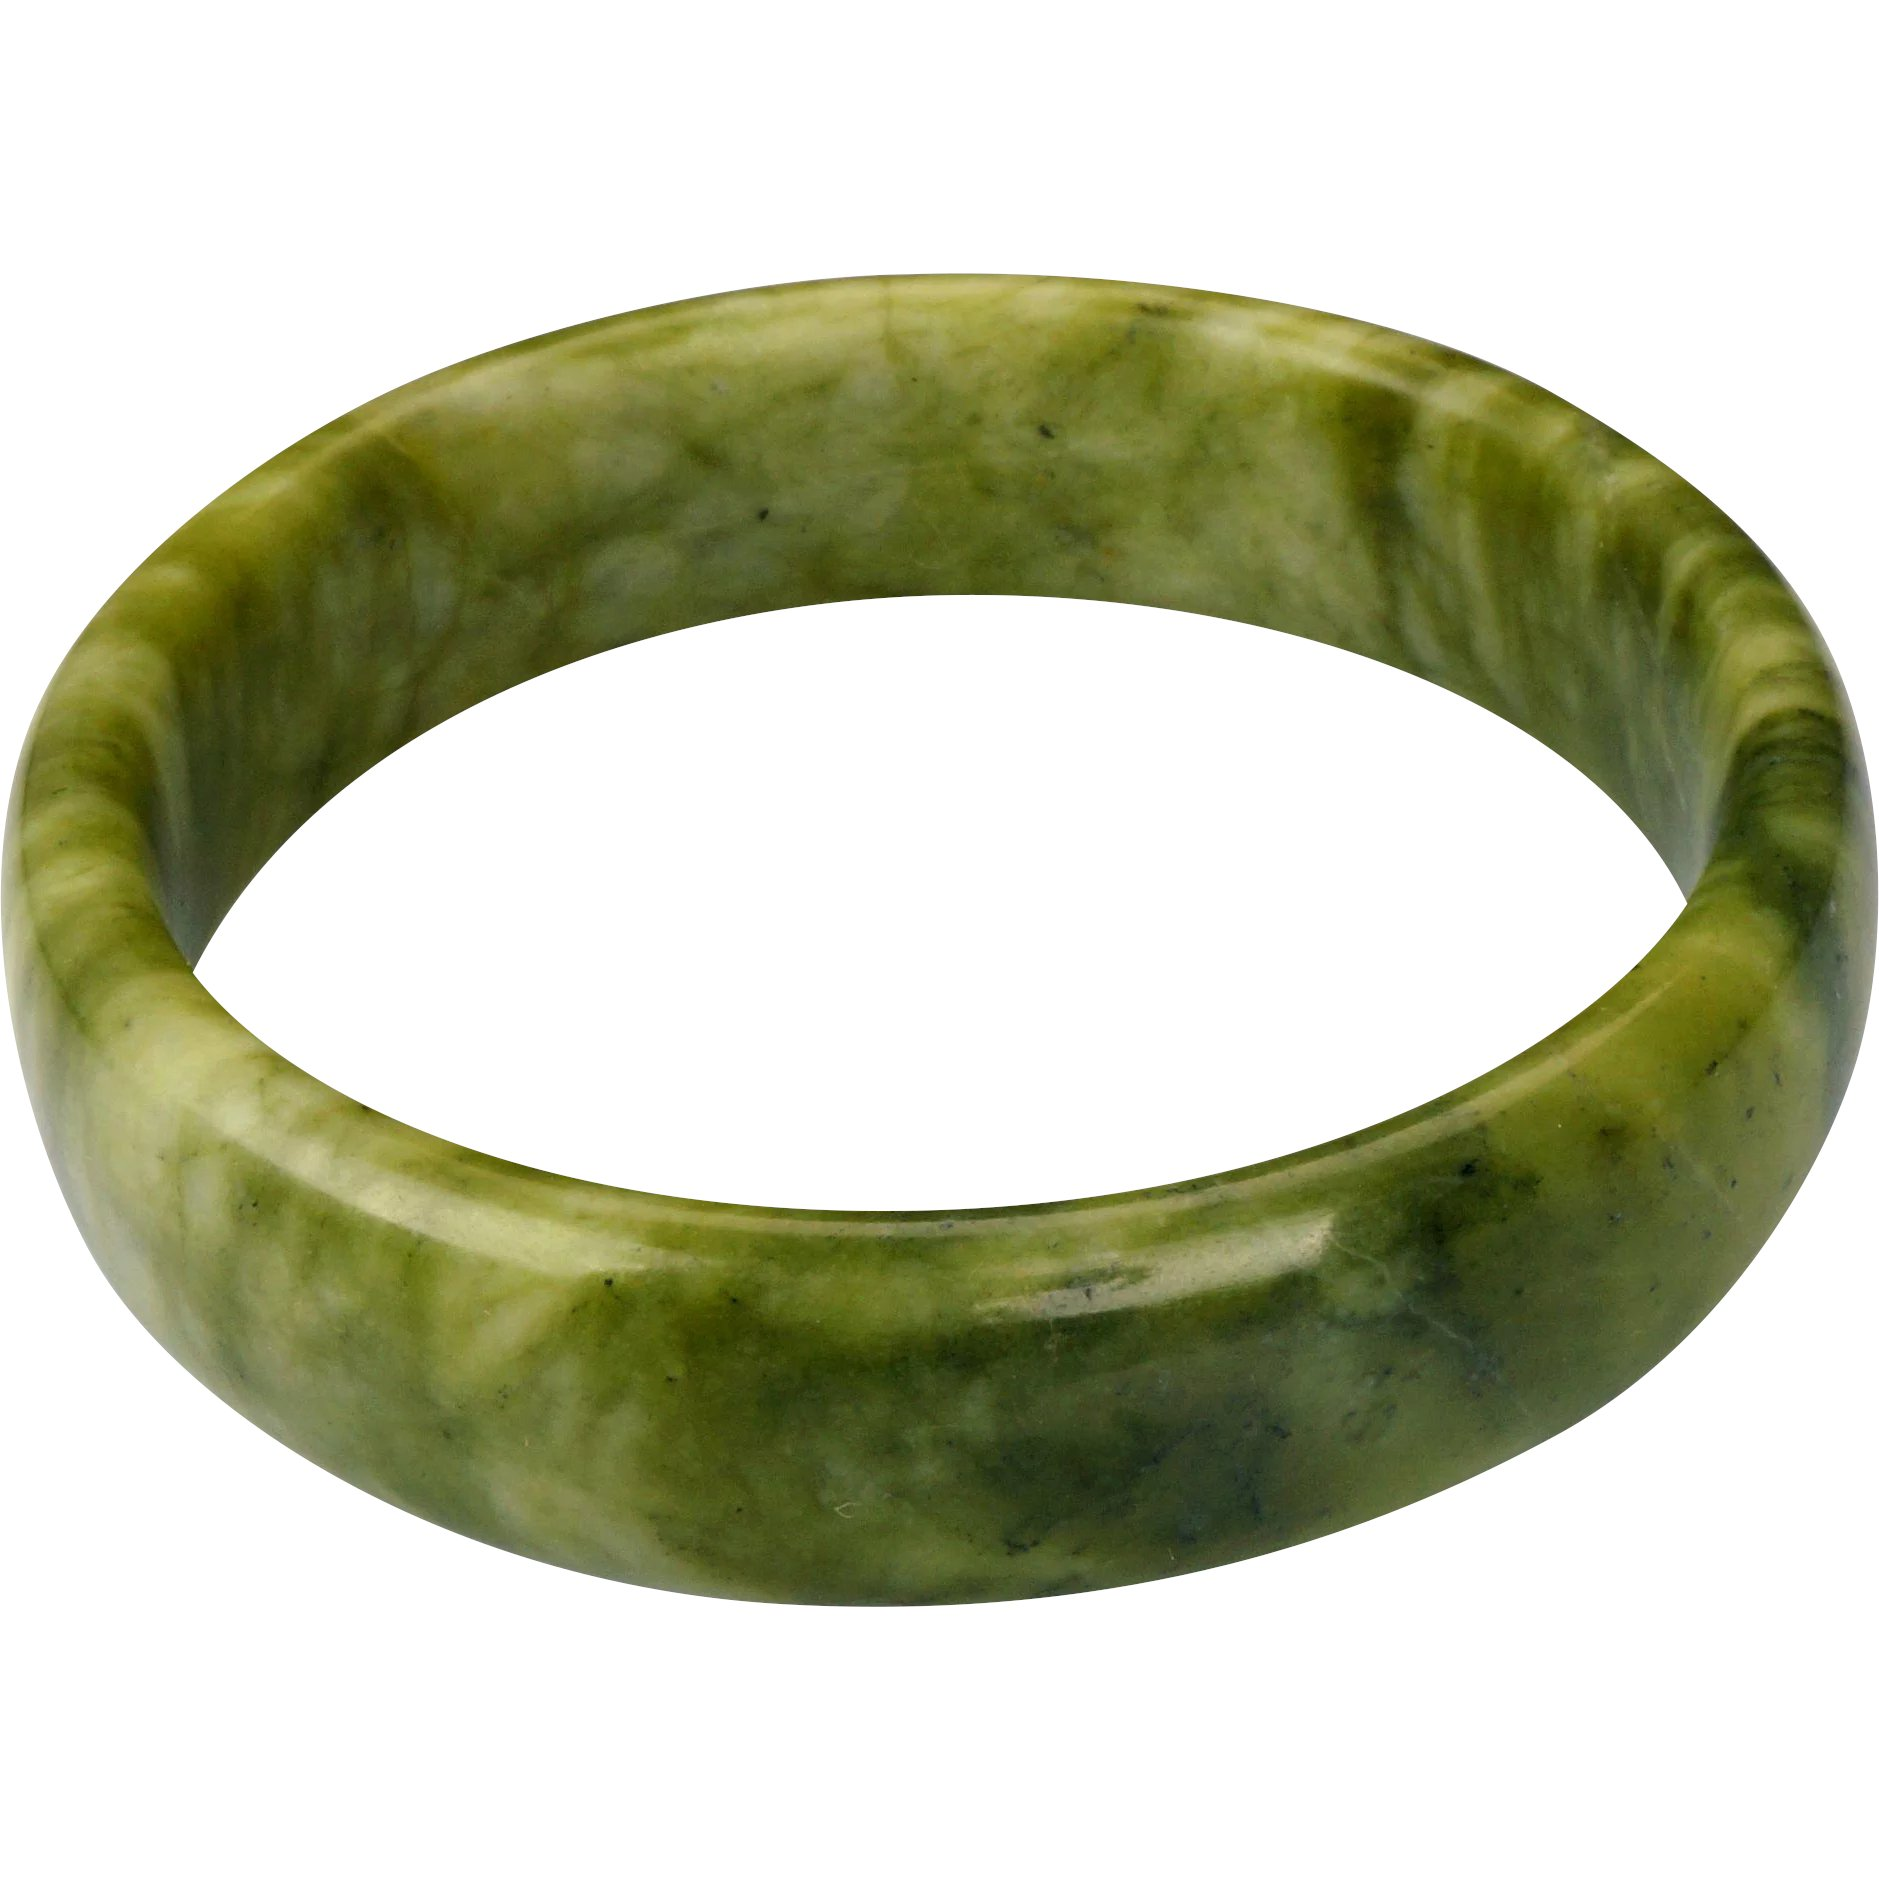 emperor stone image product rack green shop bracelet nordstrom claude of jean